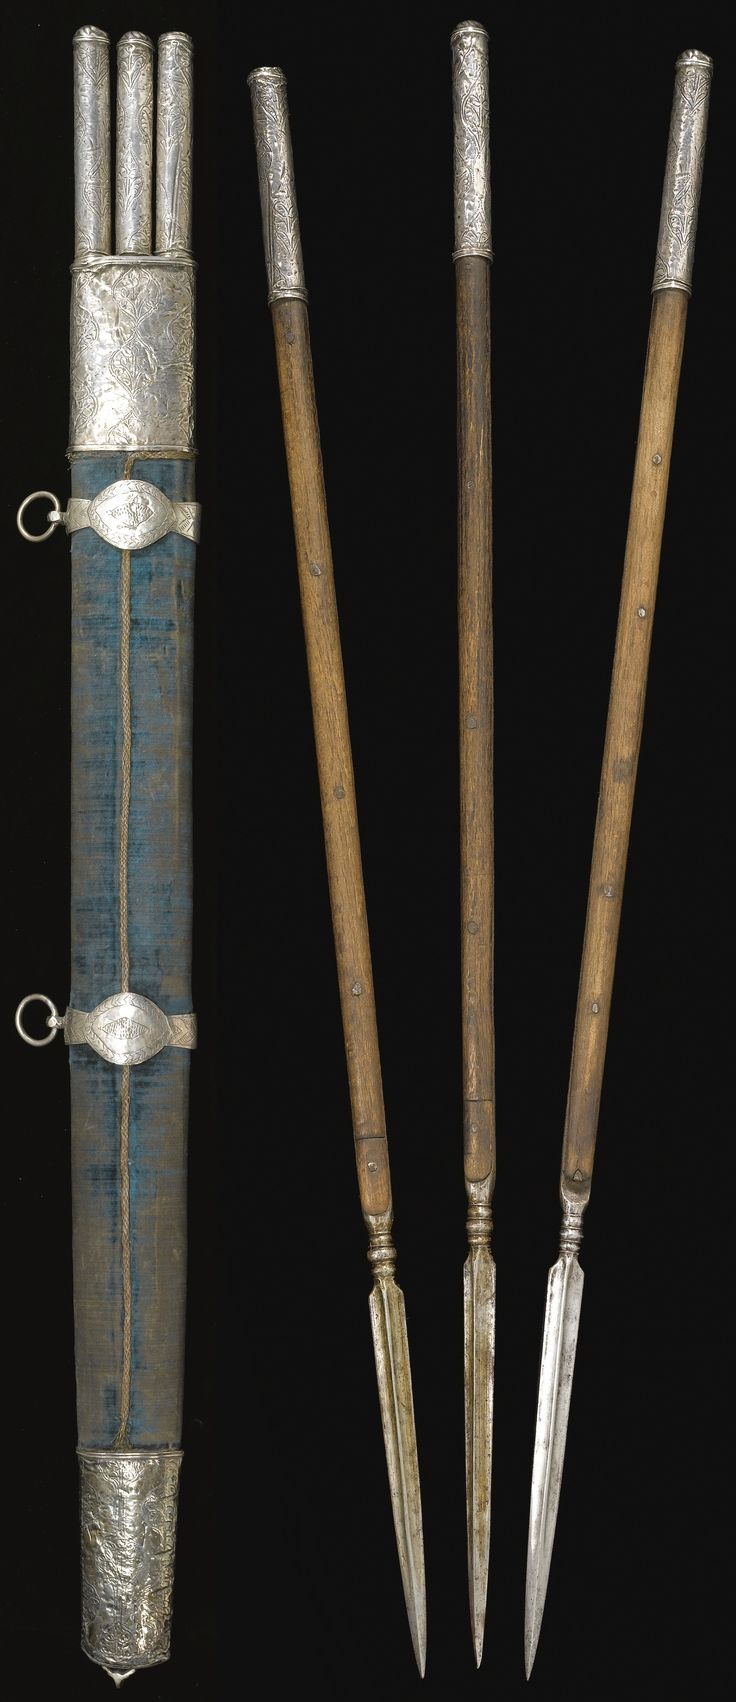 Ottoman throwing spears (Jarids) and quiver, circa 1680, the plain steel arrowheads with quadrangular tips, wooden hafts and silver terminals formed as tubular sockets decorated with chased and engraved medallions containing floral sprays, the wooden quiver mounted with blue-green velvet, the silver chape, lock and suspension loops decorated en suite, the lock with traces of gilding, 83.8cm.